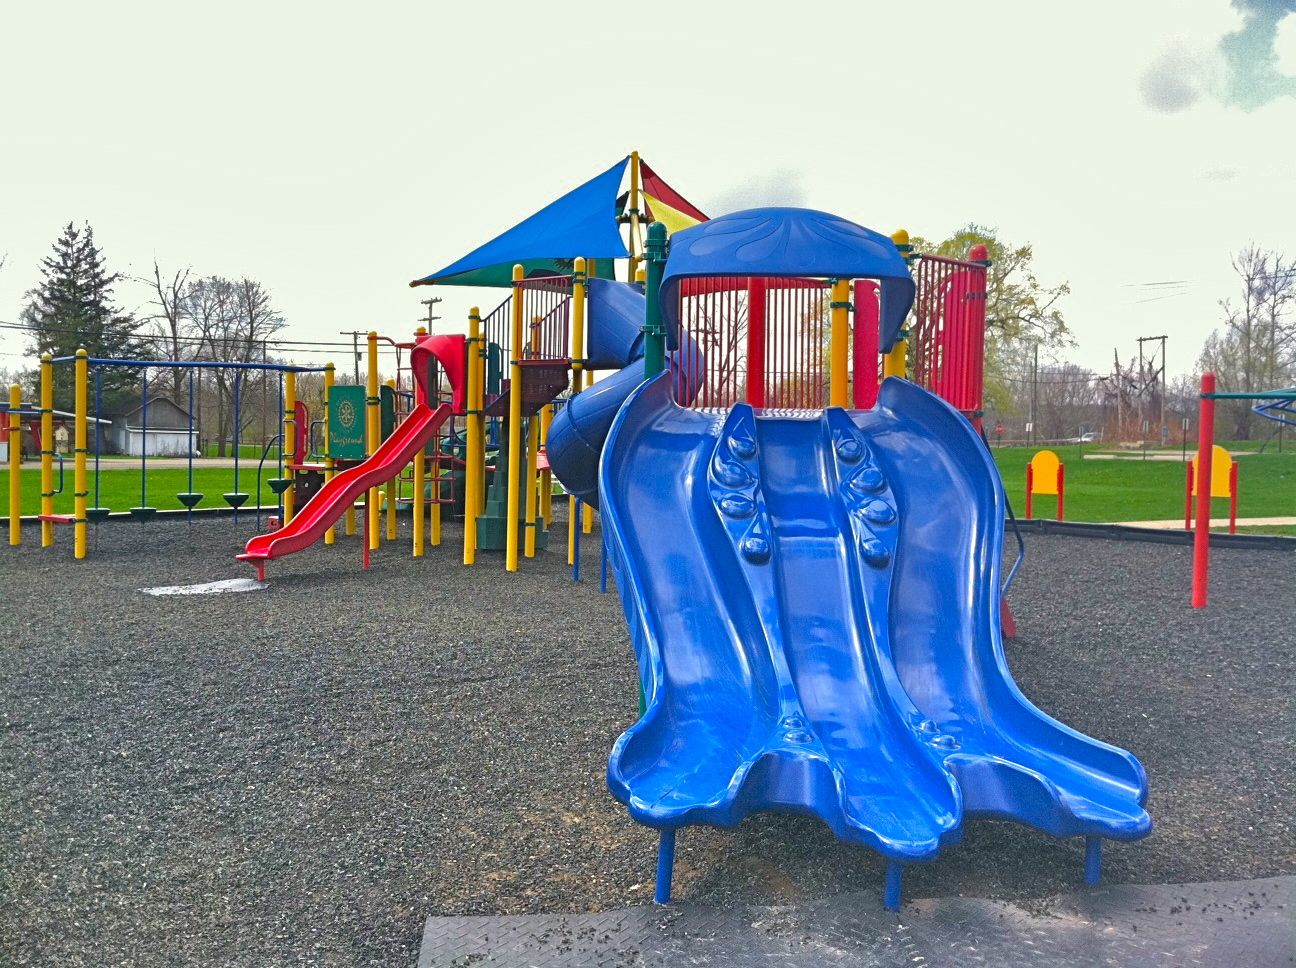 Mount Vernon Ohio Riverside Park Slide Photo by Sam Miller